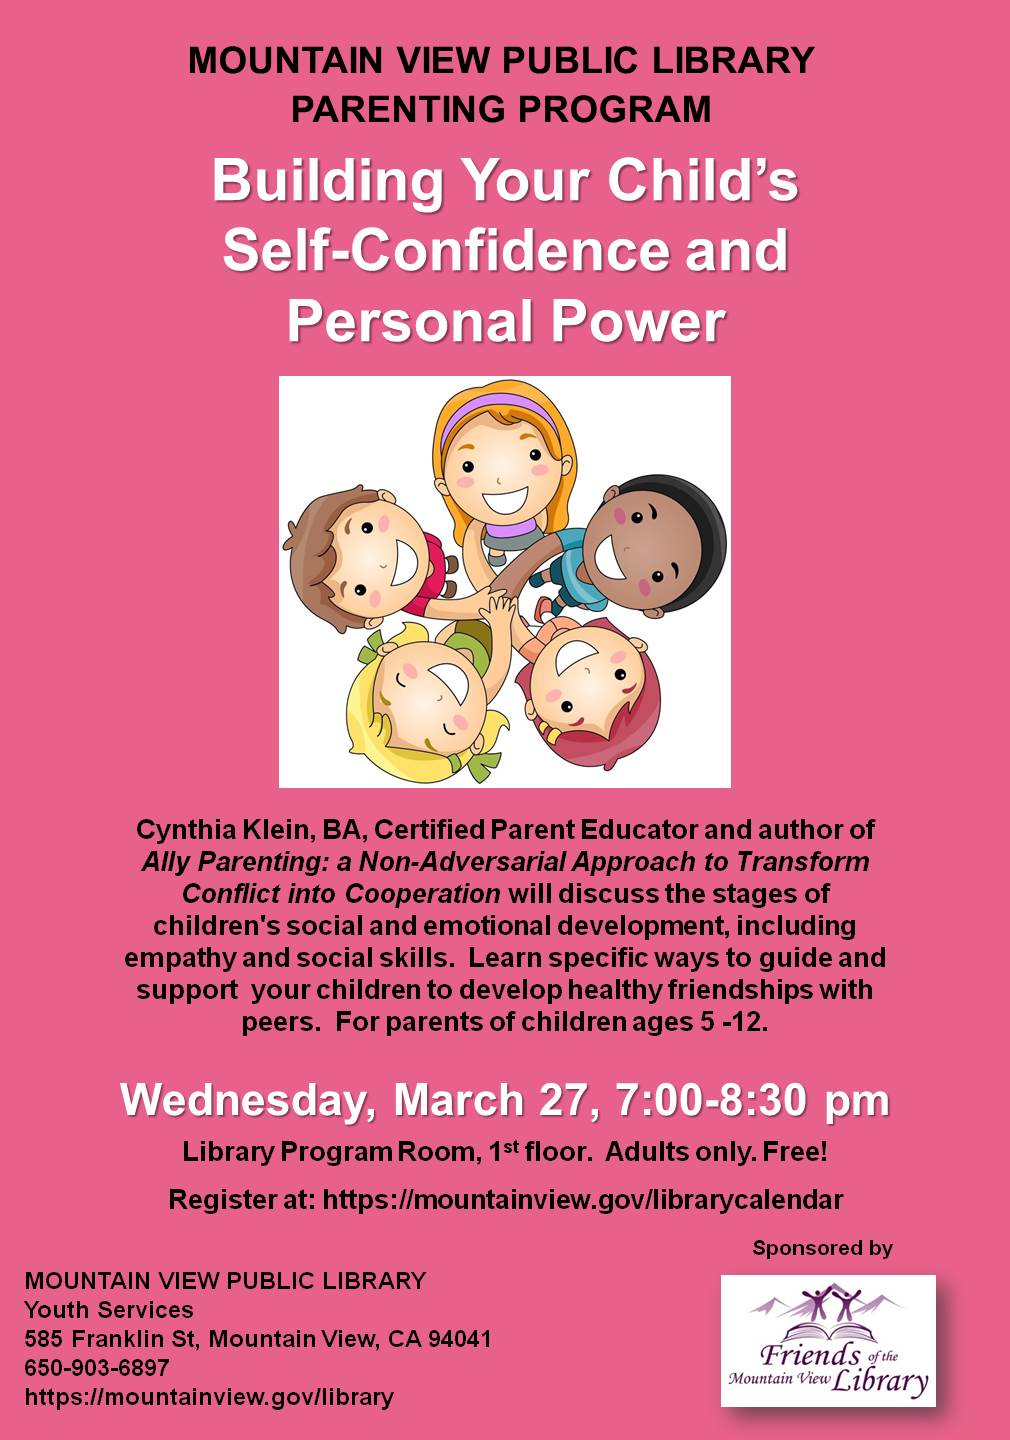 Building Your Child's Self-Confidence and Personal Power